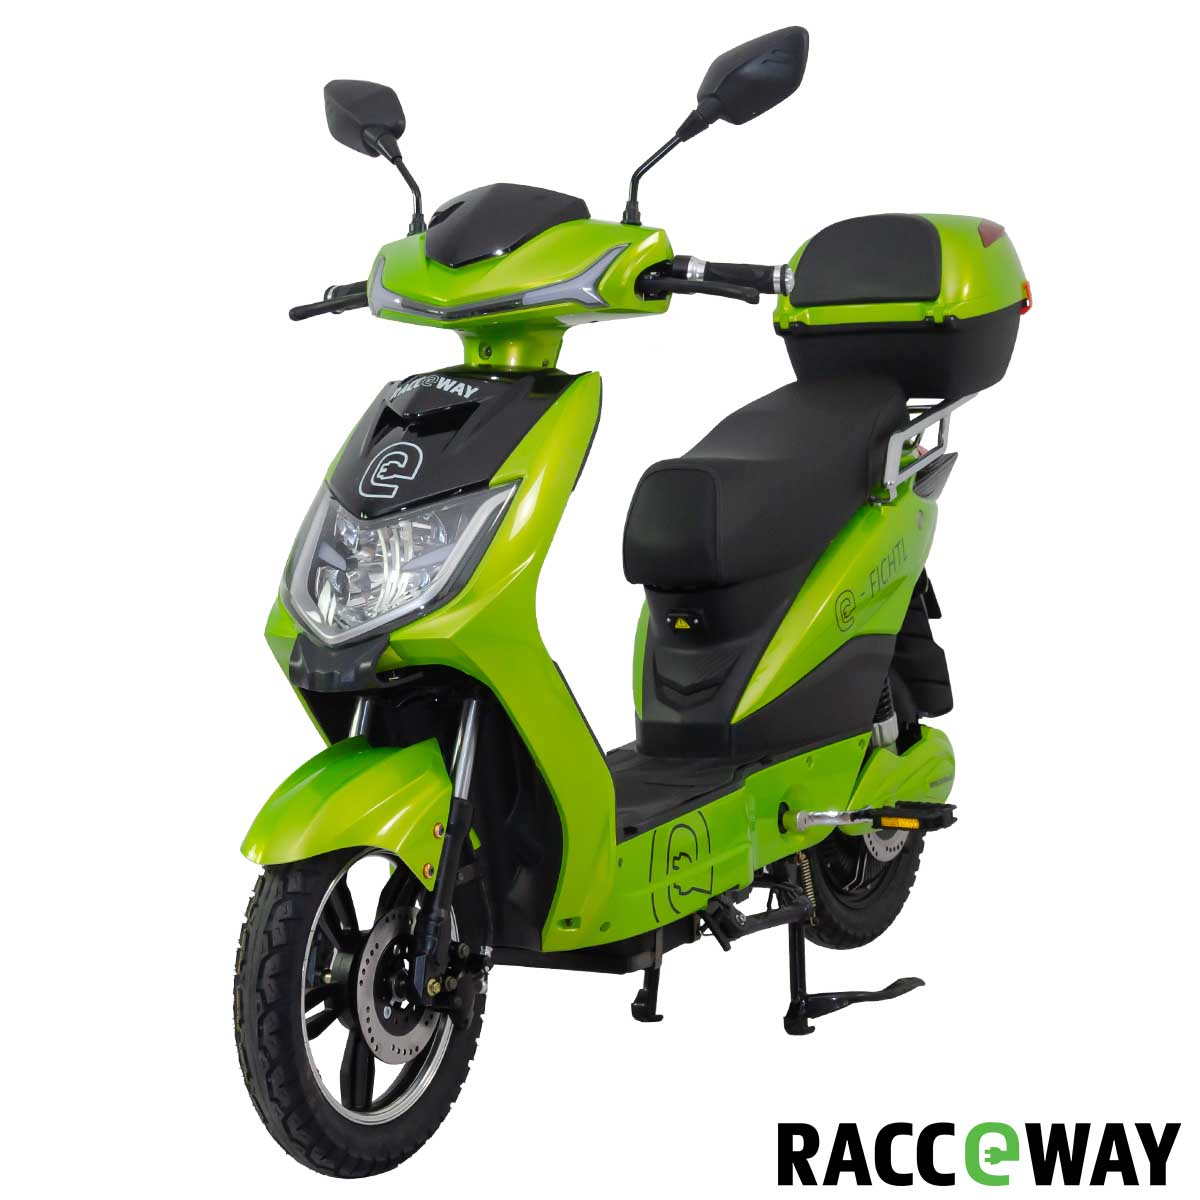 https://www.motoe.cz/inshop/catalogue/products/pictures/motoe-1f-06_a2.jpg?timestamp=20210506110329